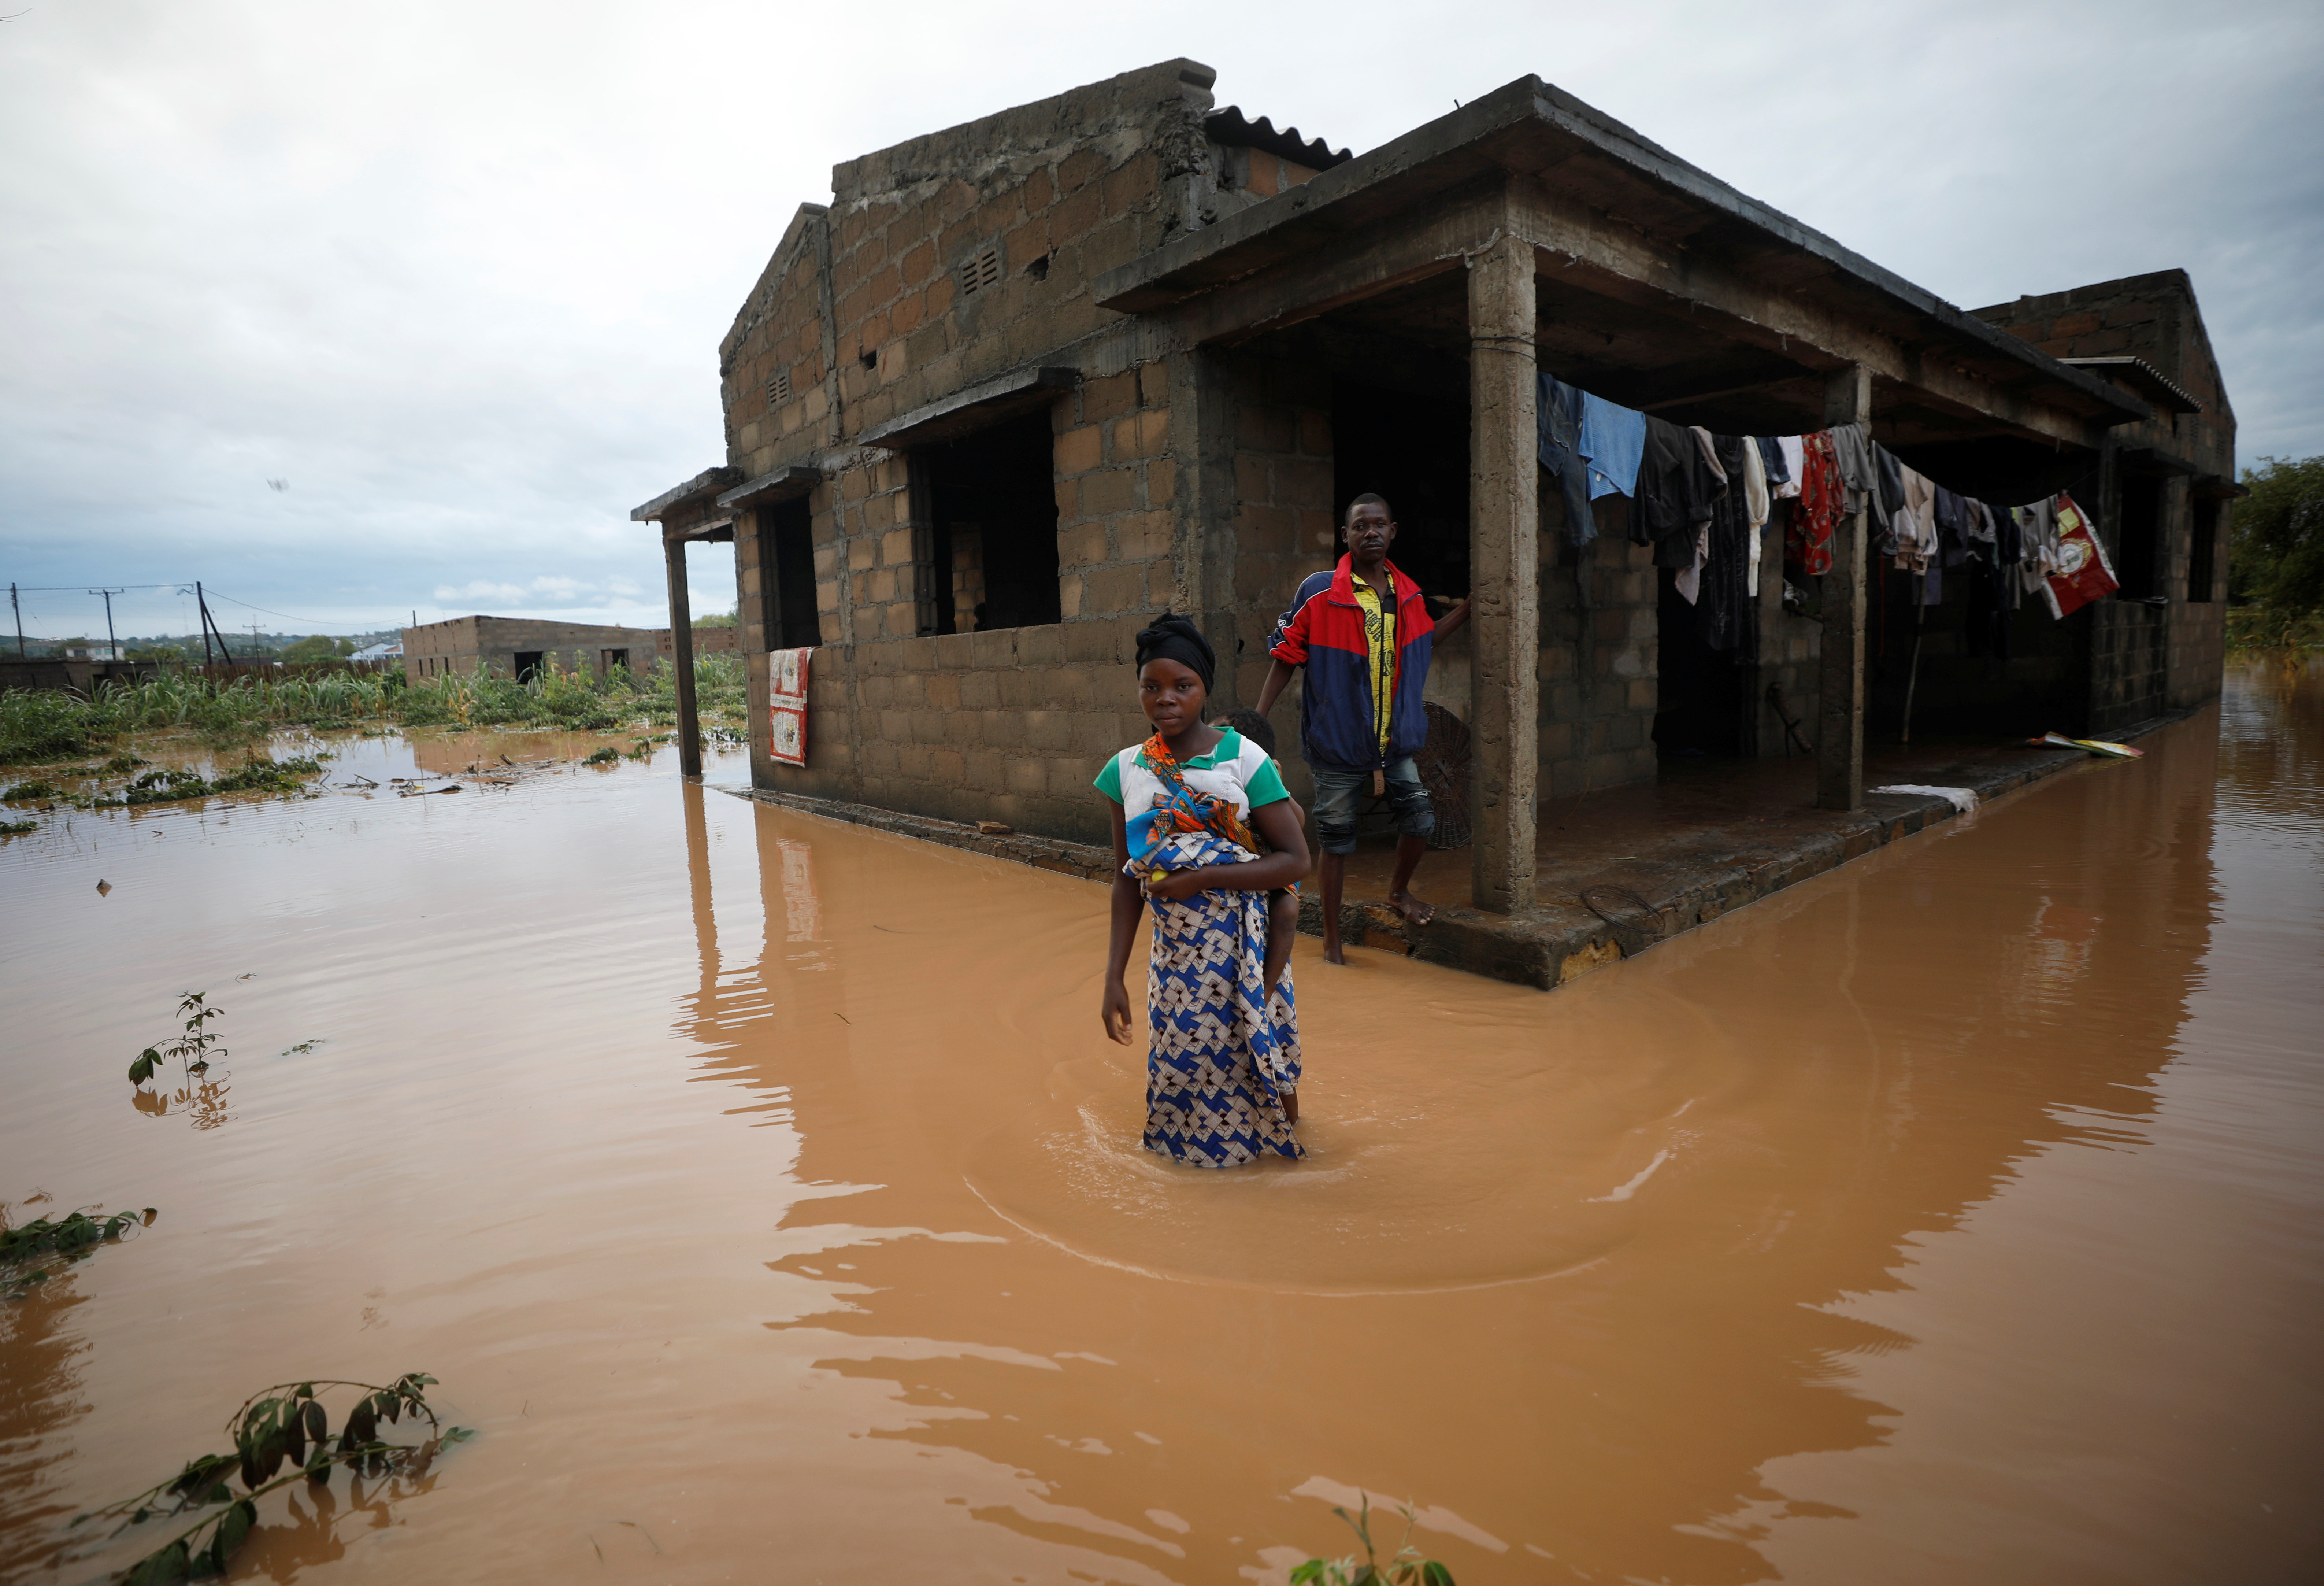 Villagers wade through floodwaters outside their home, flooded in the aftermath of Cyclone Kenneth, at Wimbe village in Pemba, Mozambique.